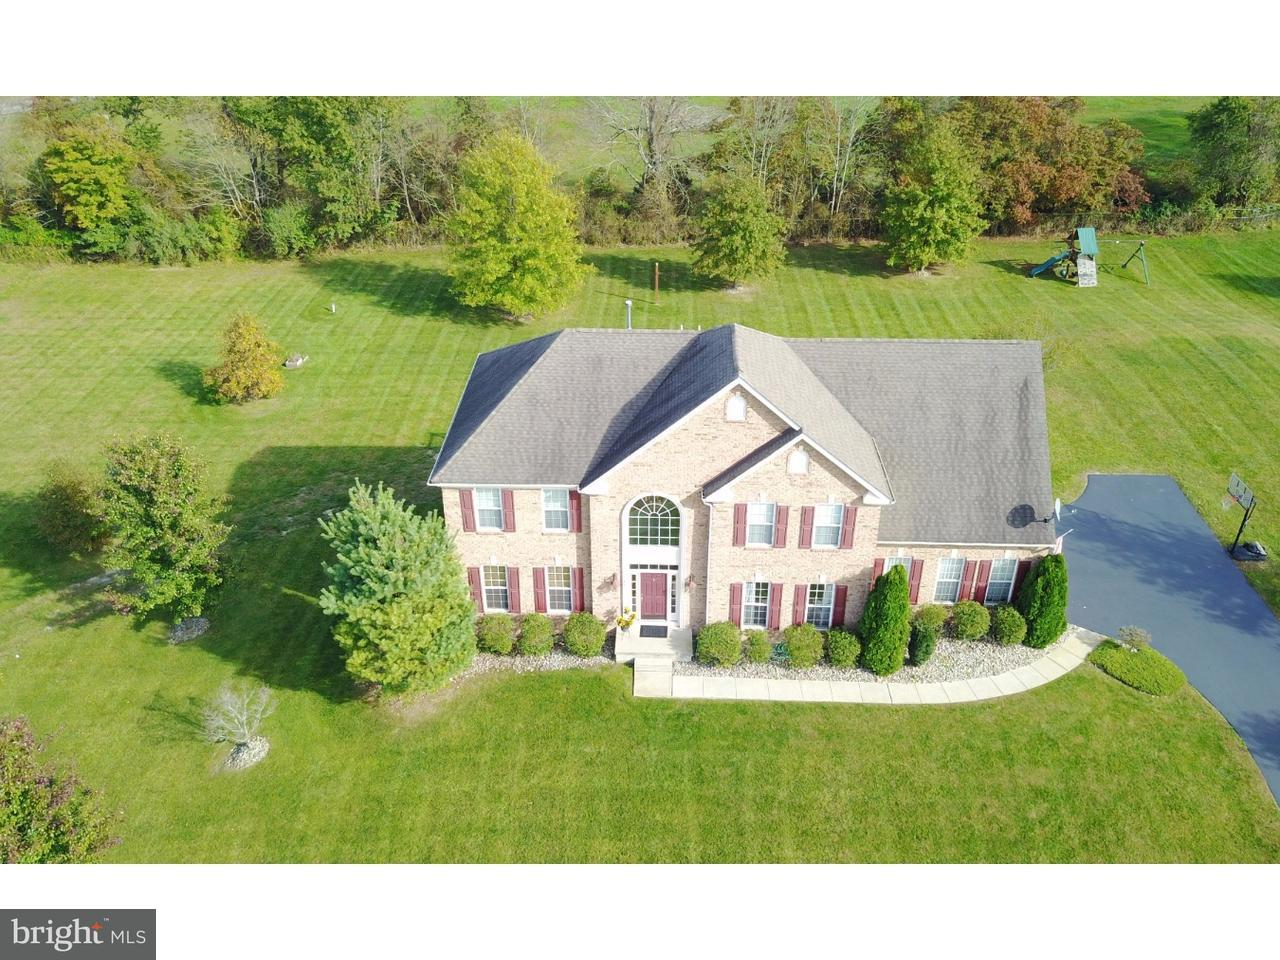 Single Family Home for Sale at 25 NICHOLAS Court Cream Ridge, New Jersey 08514 United StatesMunicipality: Upper Freehold Township